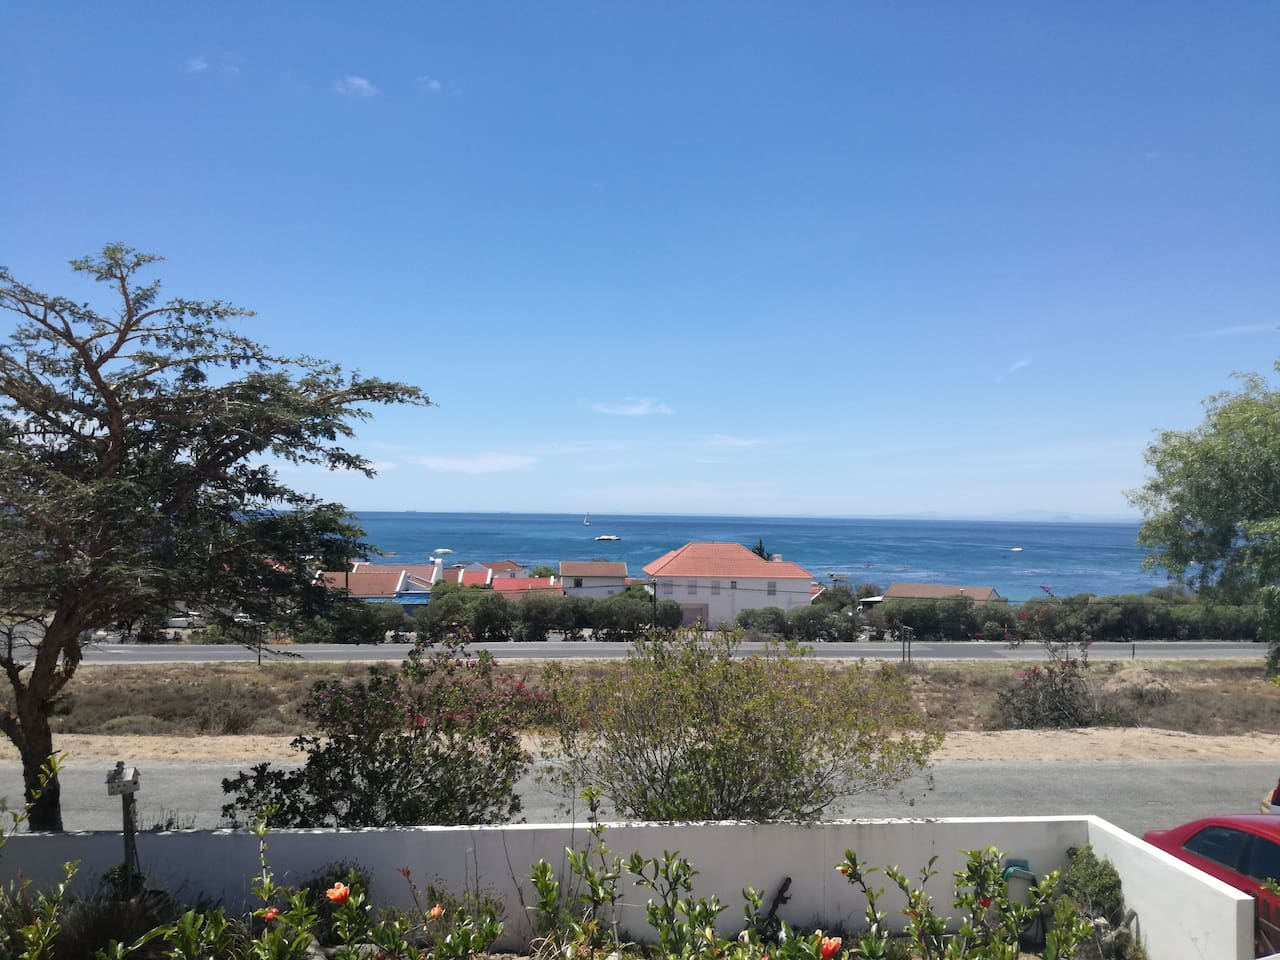 The view over St Helena Bay from the stoep where you could enjoy your morning coffee or have a braai